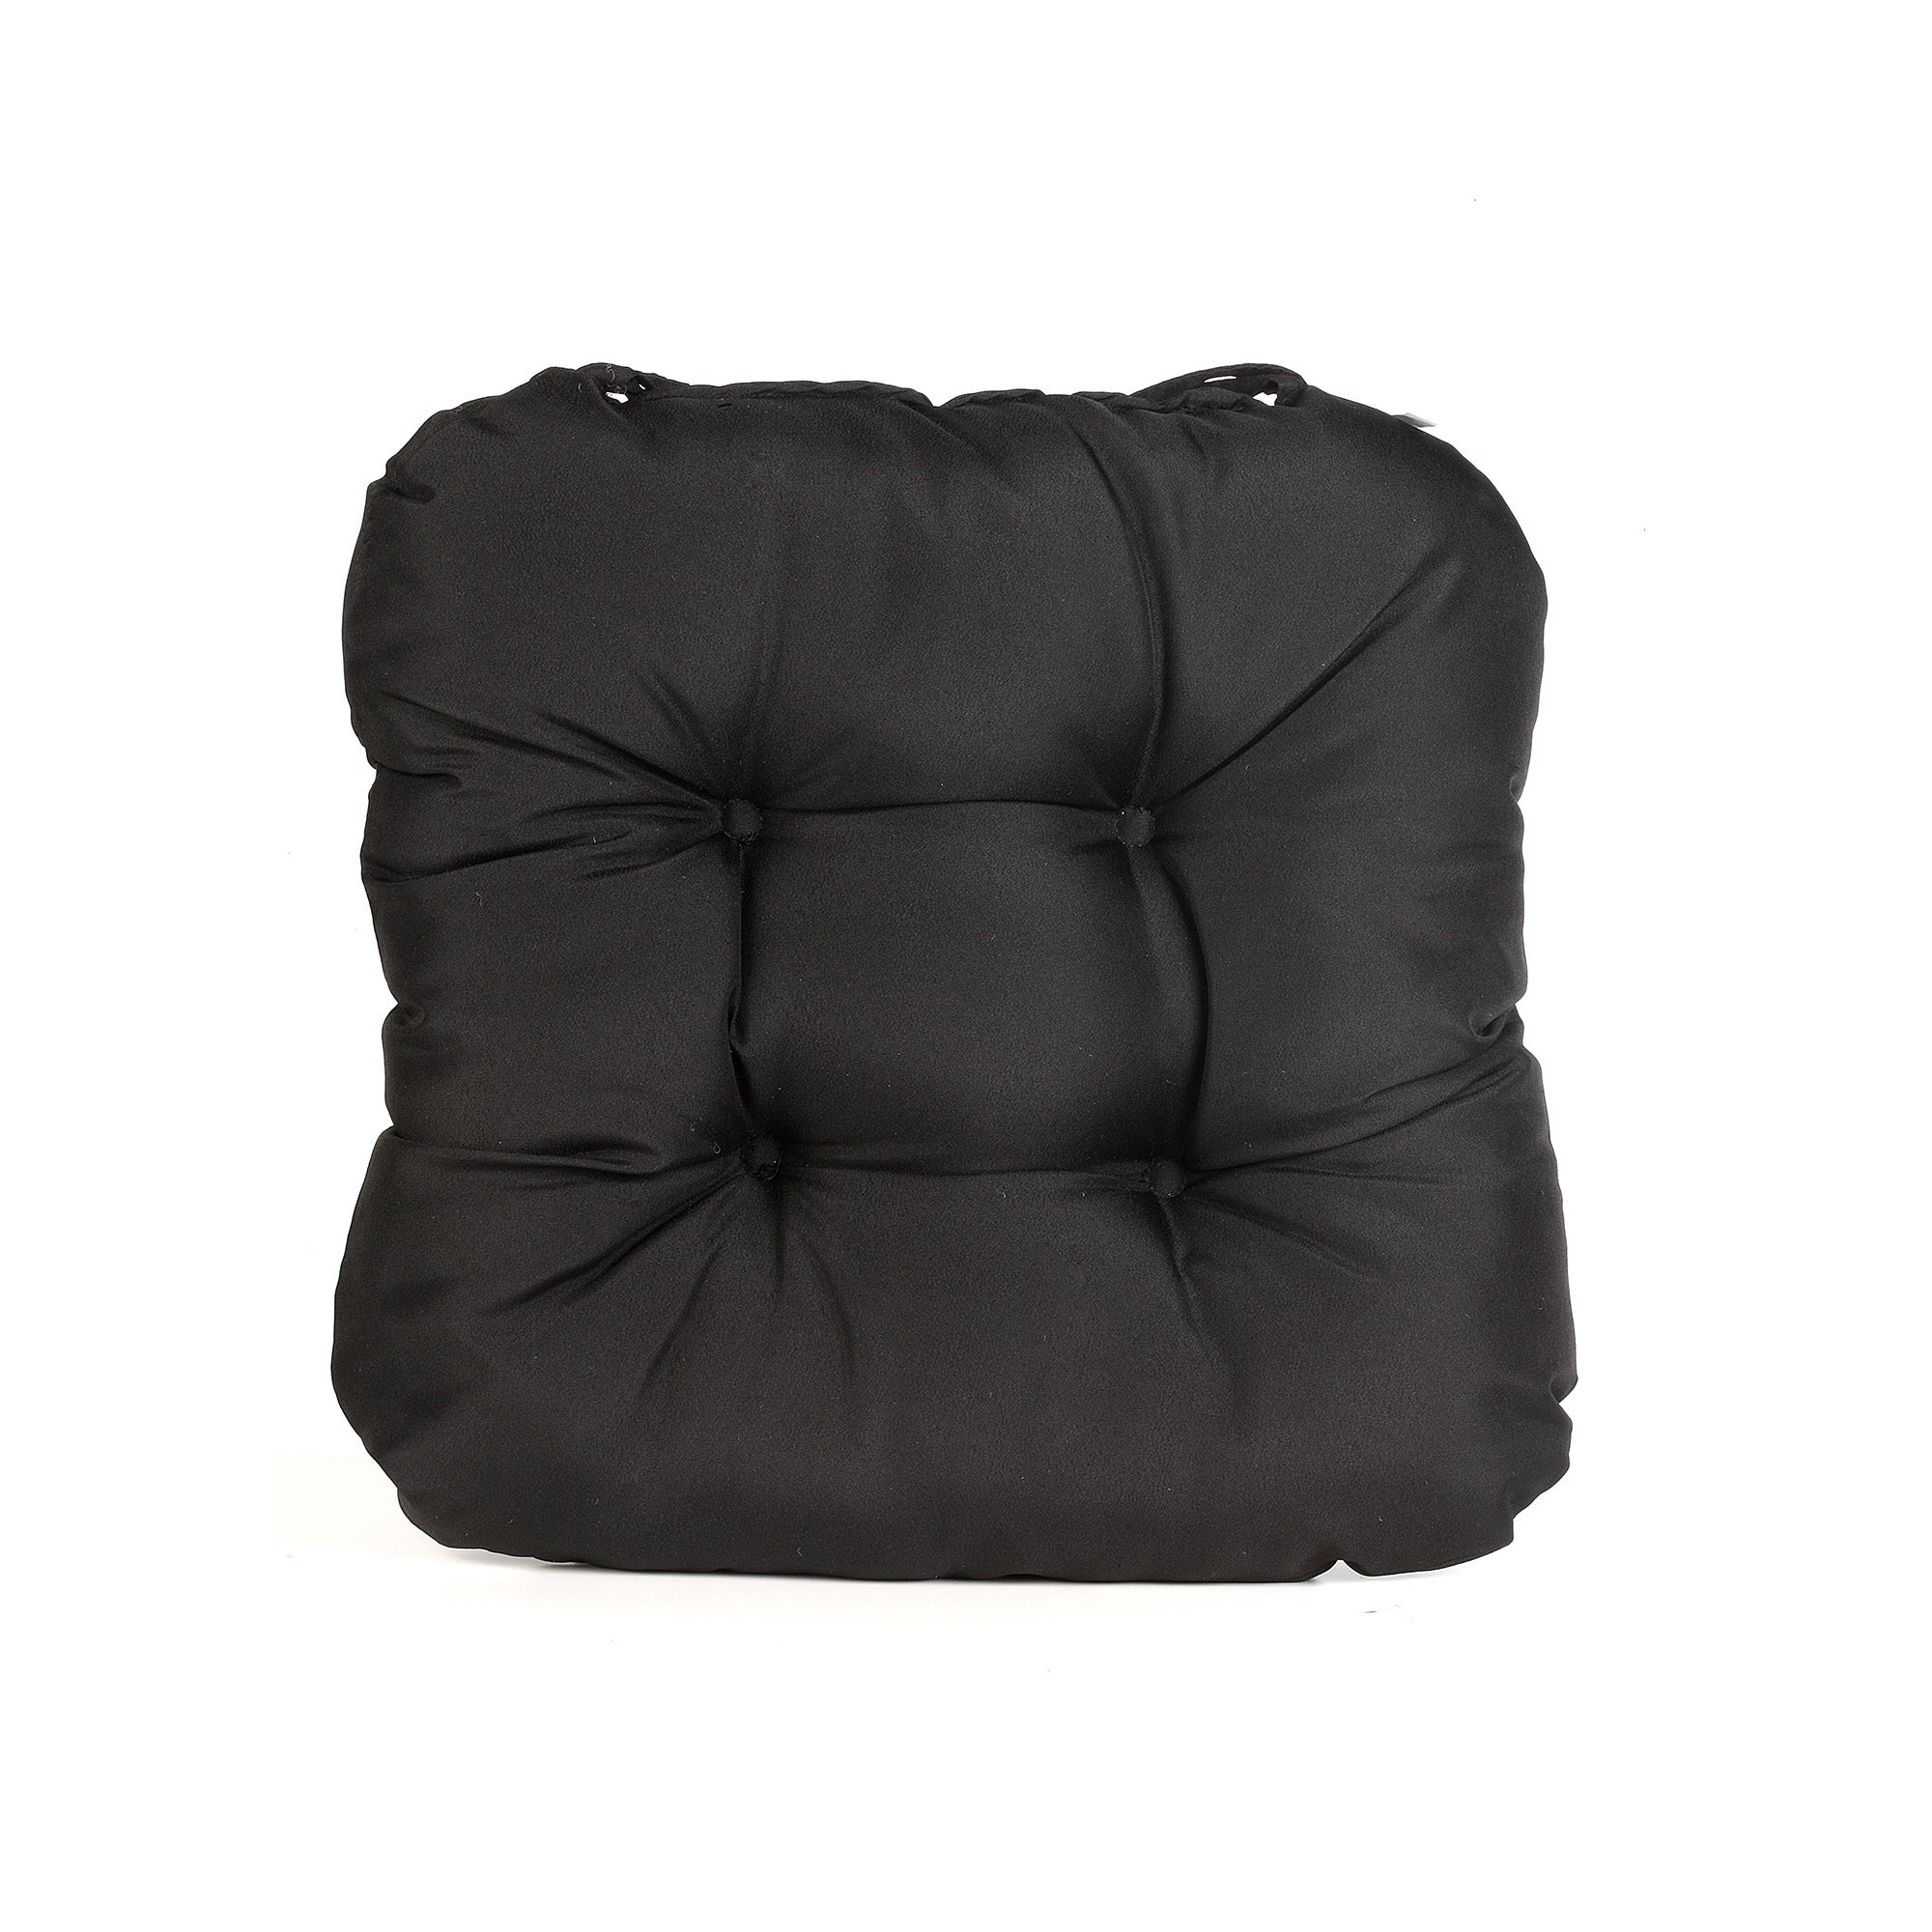 Queen of Everything Black Seat Pad